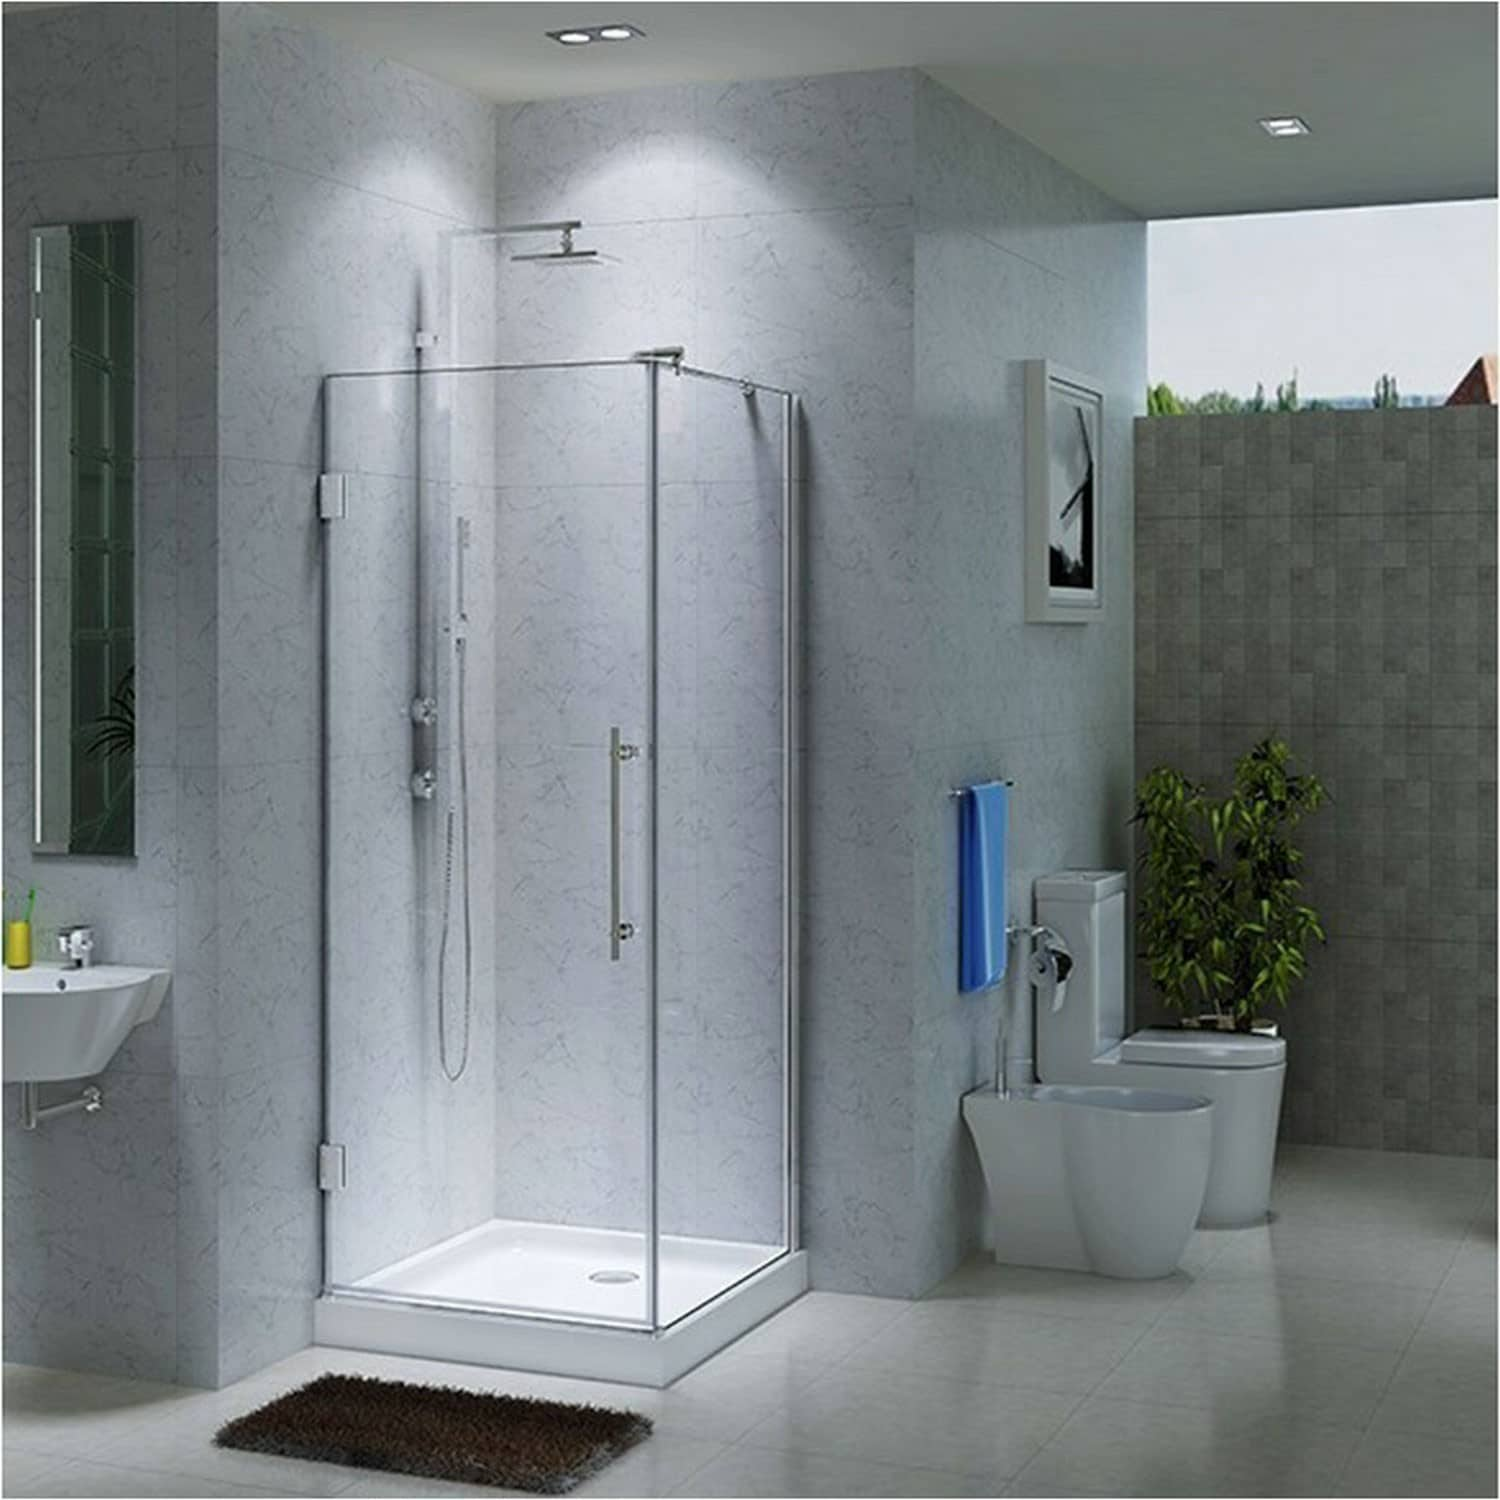 5 Best Shower Enclosure Kits for Bathrooms (June 2018) - Reviews